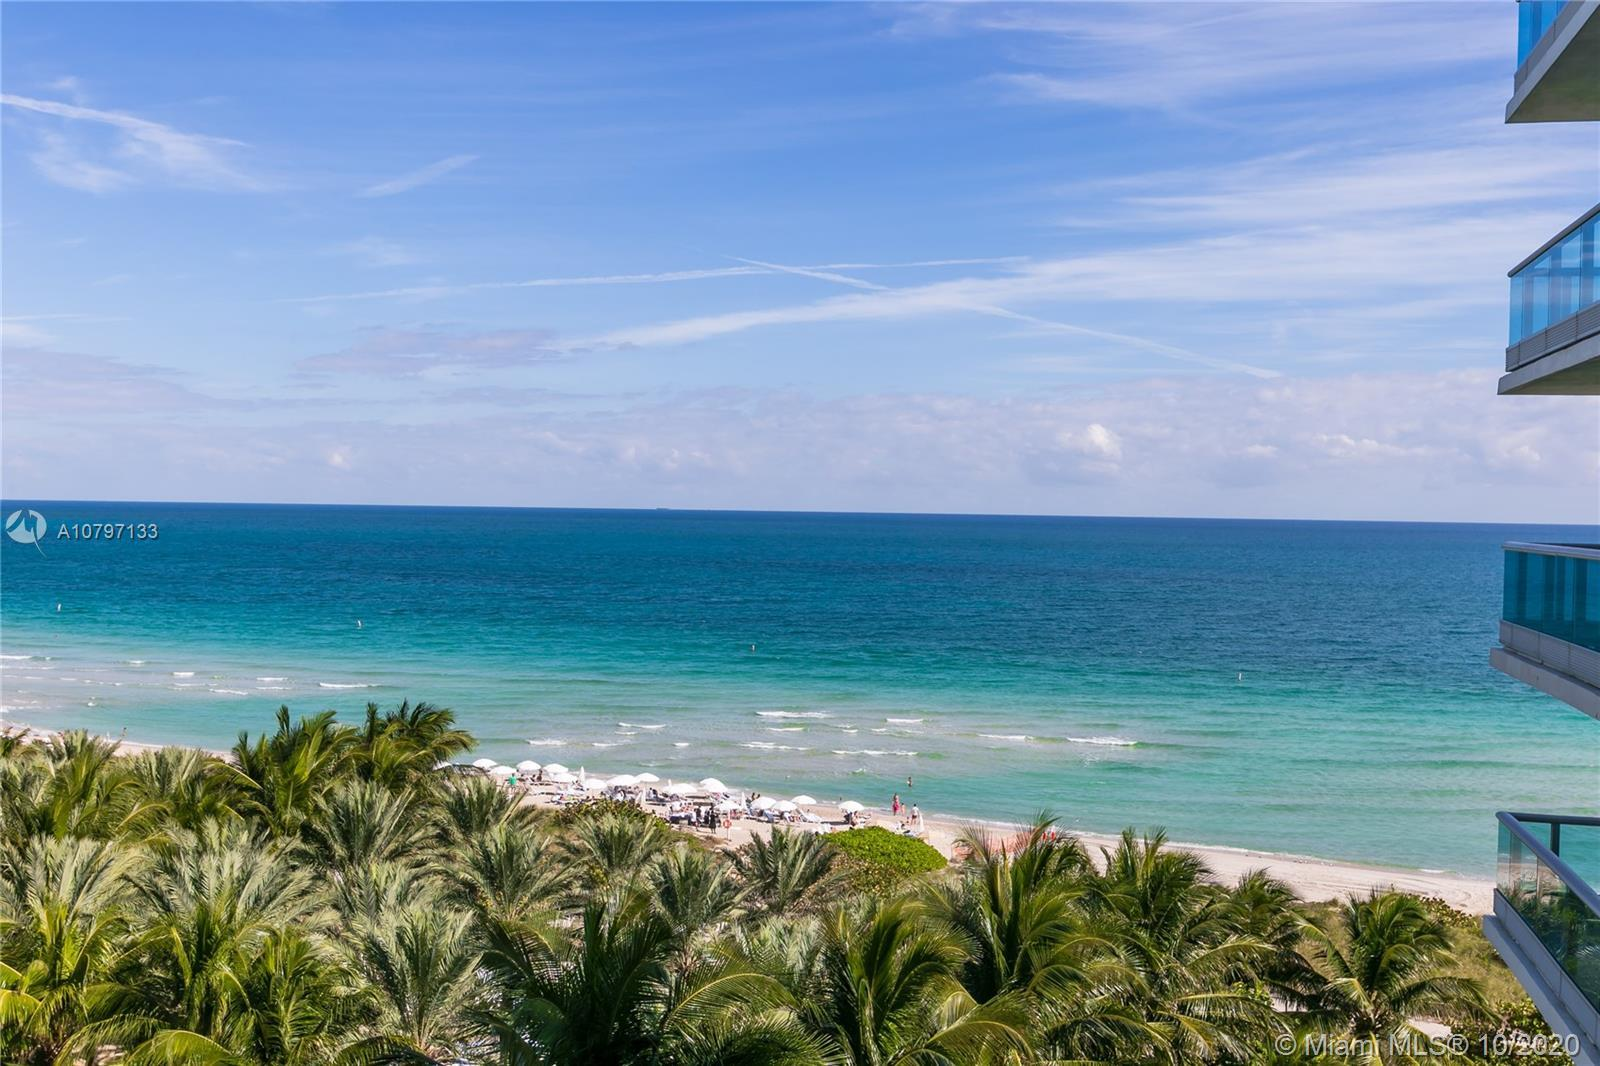 Sophisticated 2 bedroom + den ocean front condo located at the exclusive Azure Boutique bldg. Sought